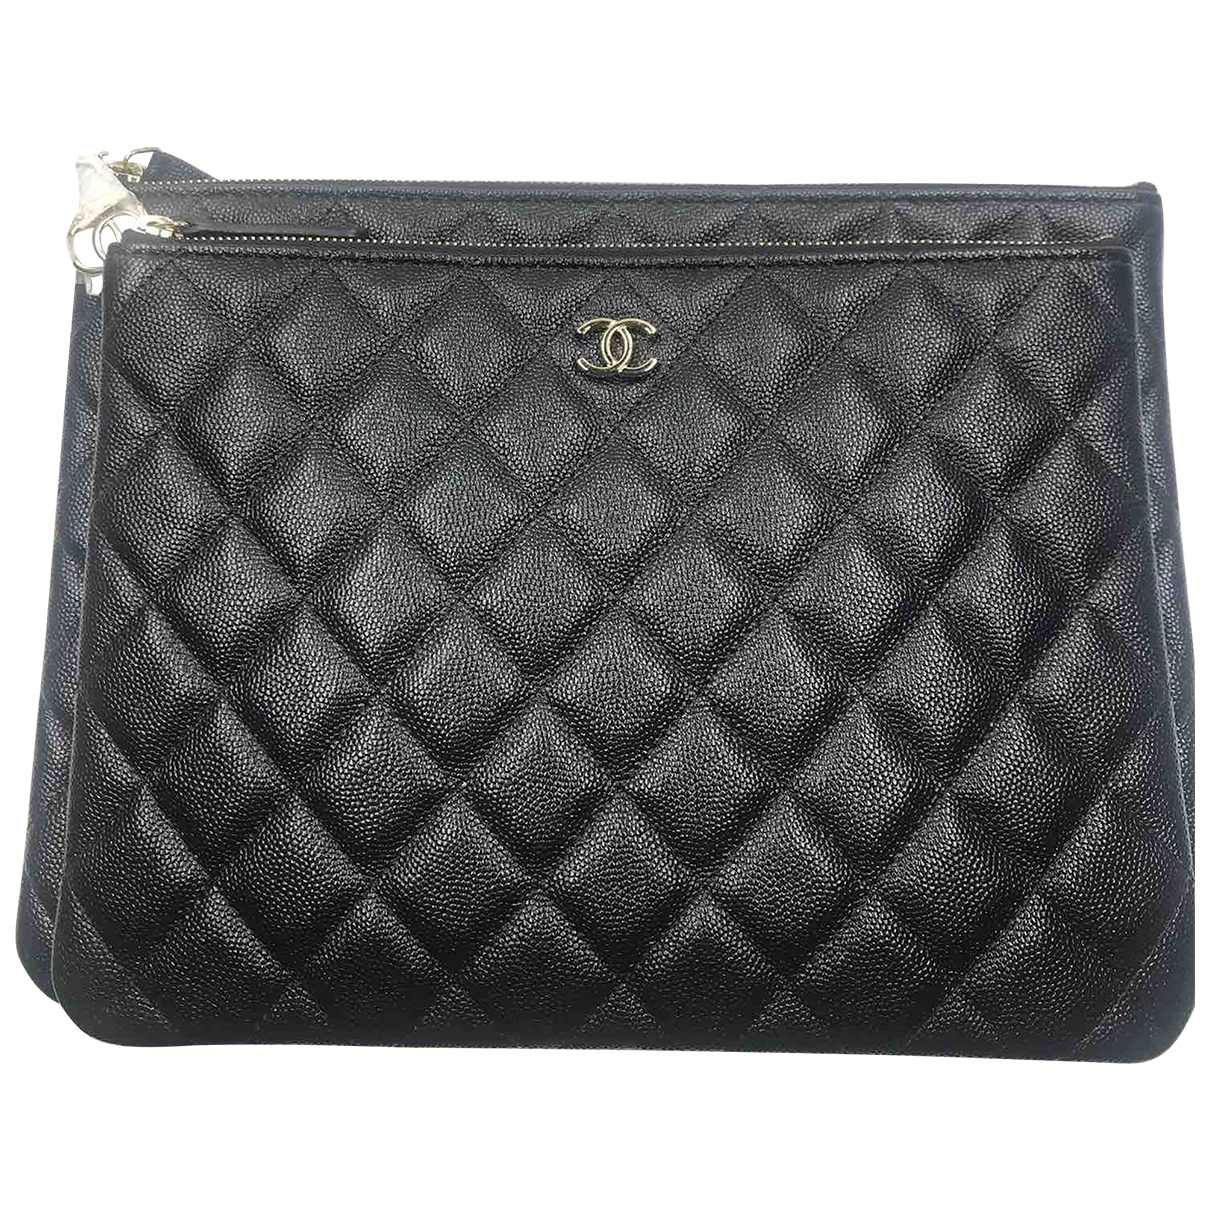 Chanel Timeless/Classique Black Leather Clutch bag for Women \N